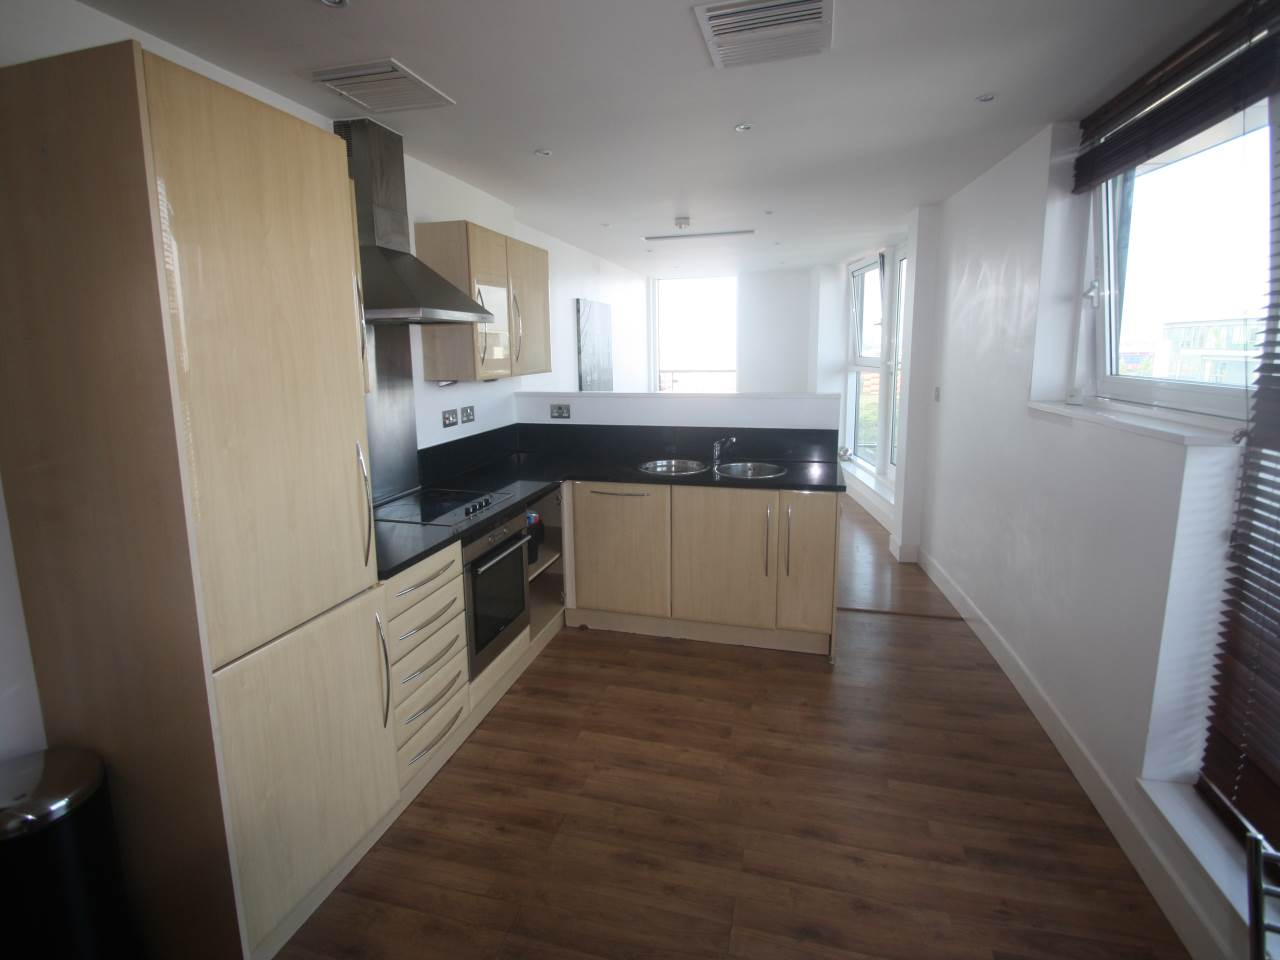 3 bed house to rent in Basin Approach - Property Image 1